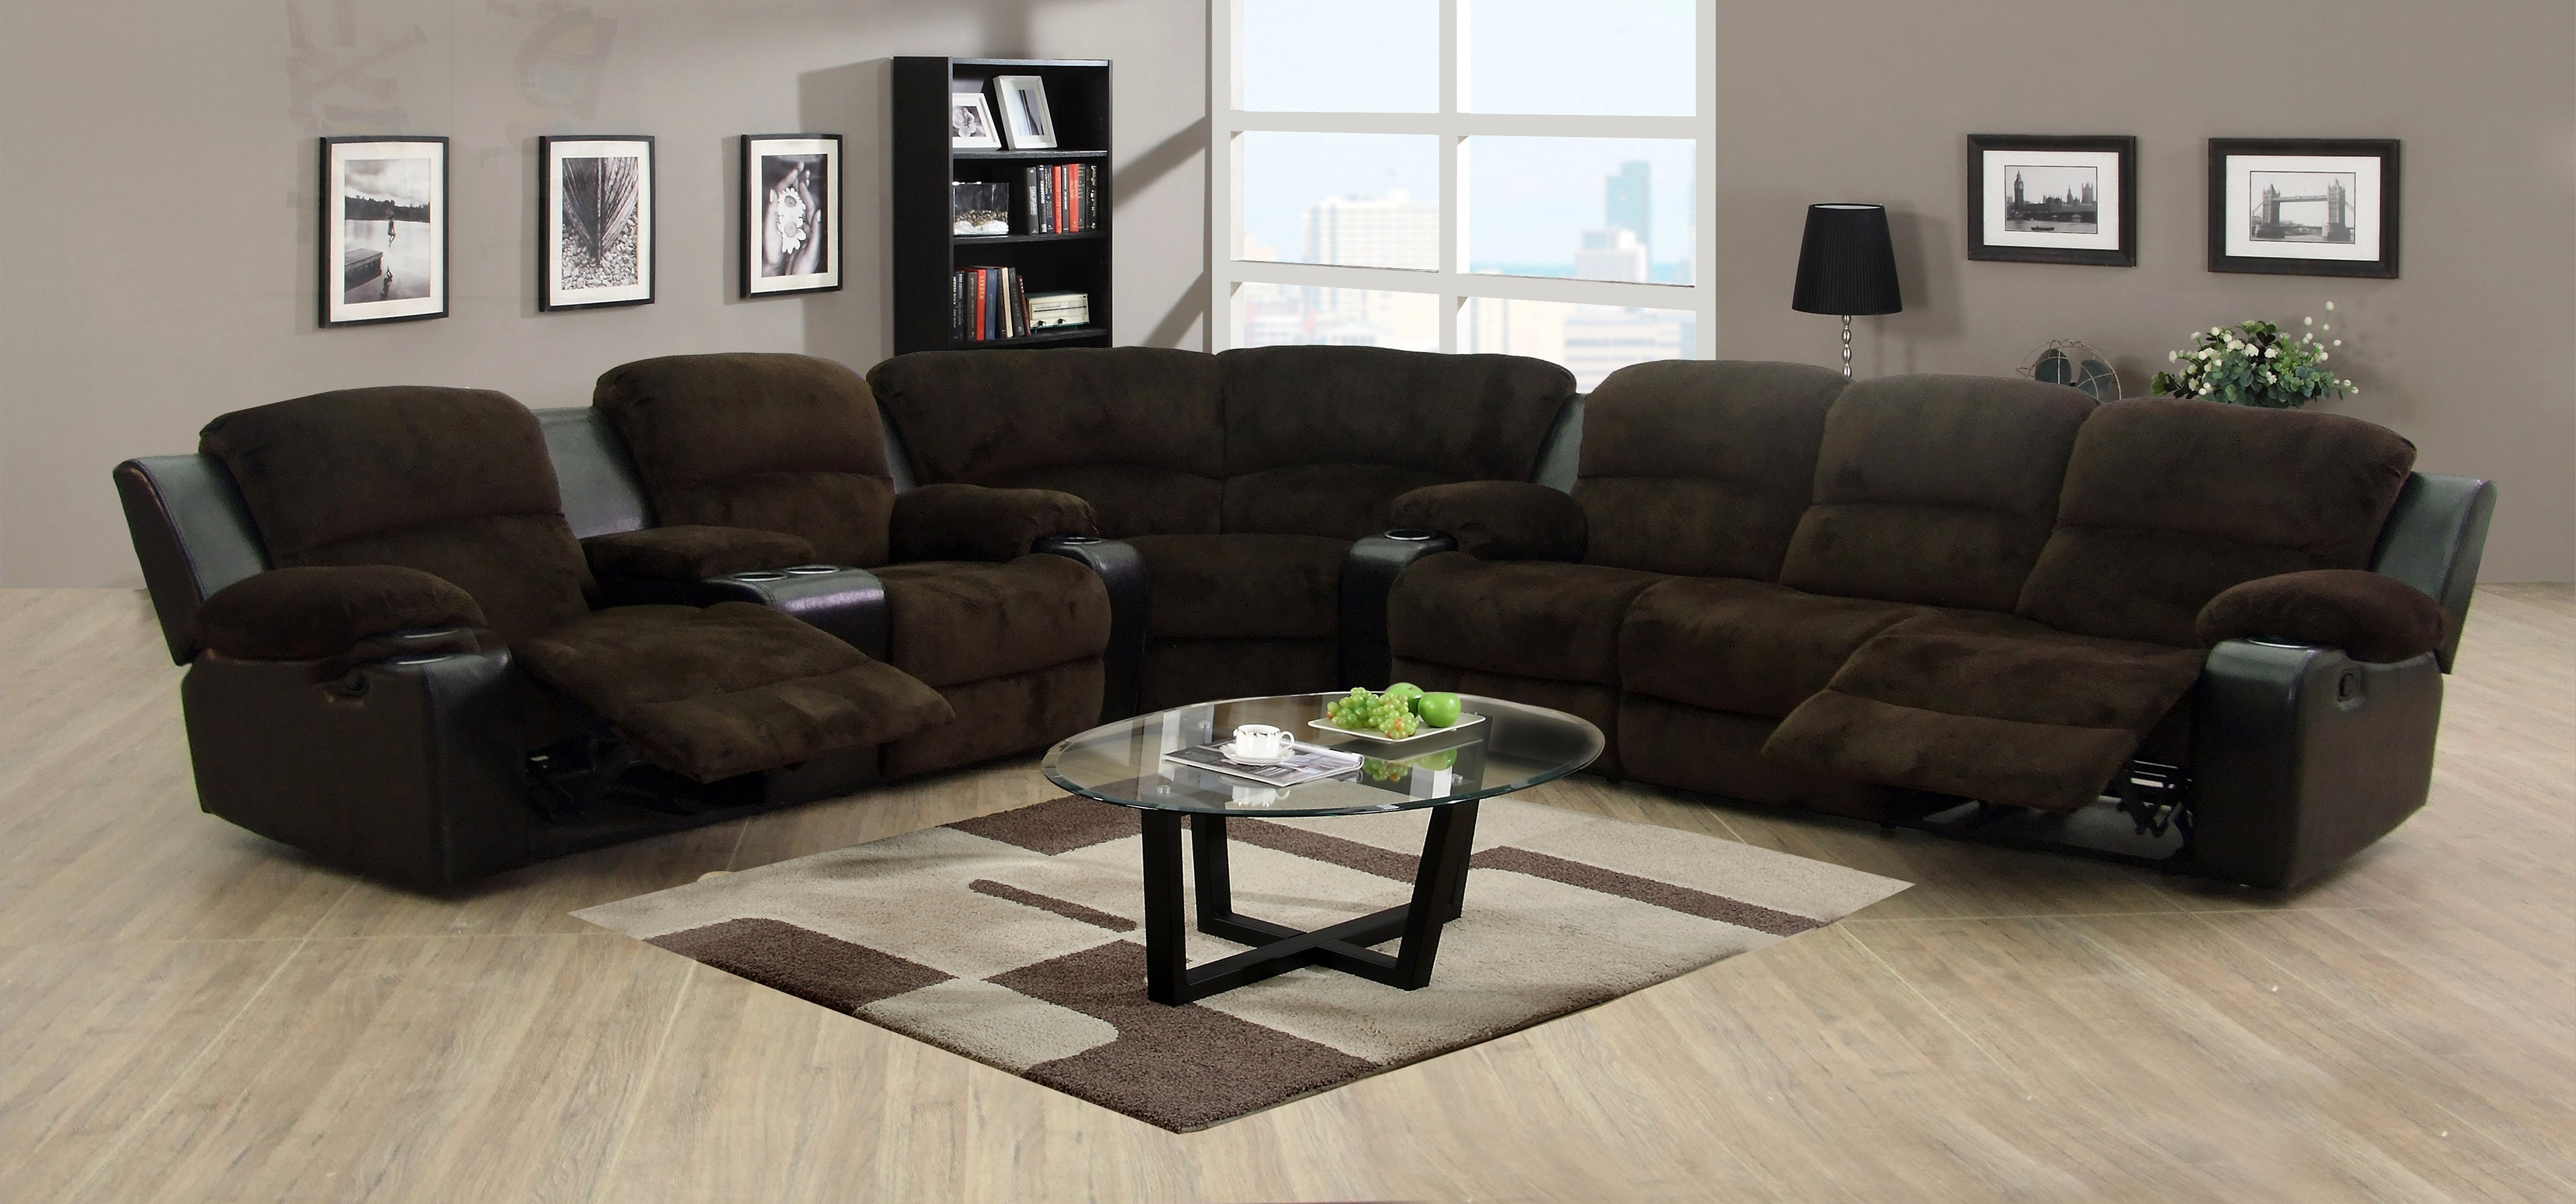 2018 Recliner Category : Sofa Recliners With Cup Holders Sectional Throughout Sectional Sofas In Toronto (View 10 of 15)